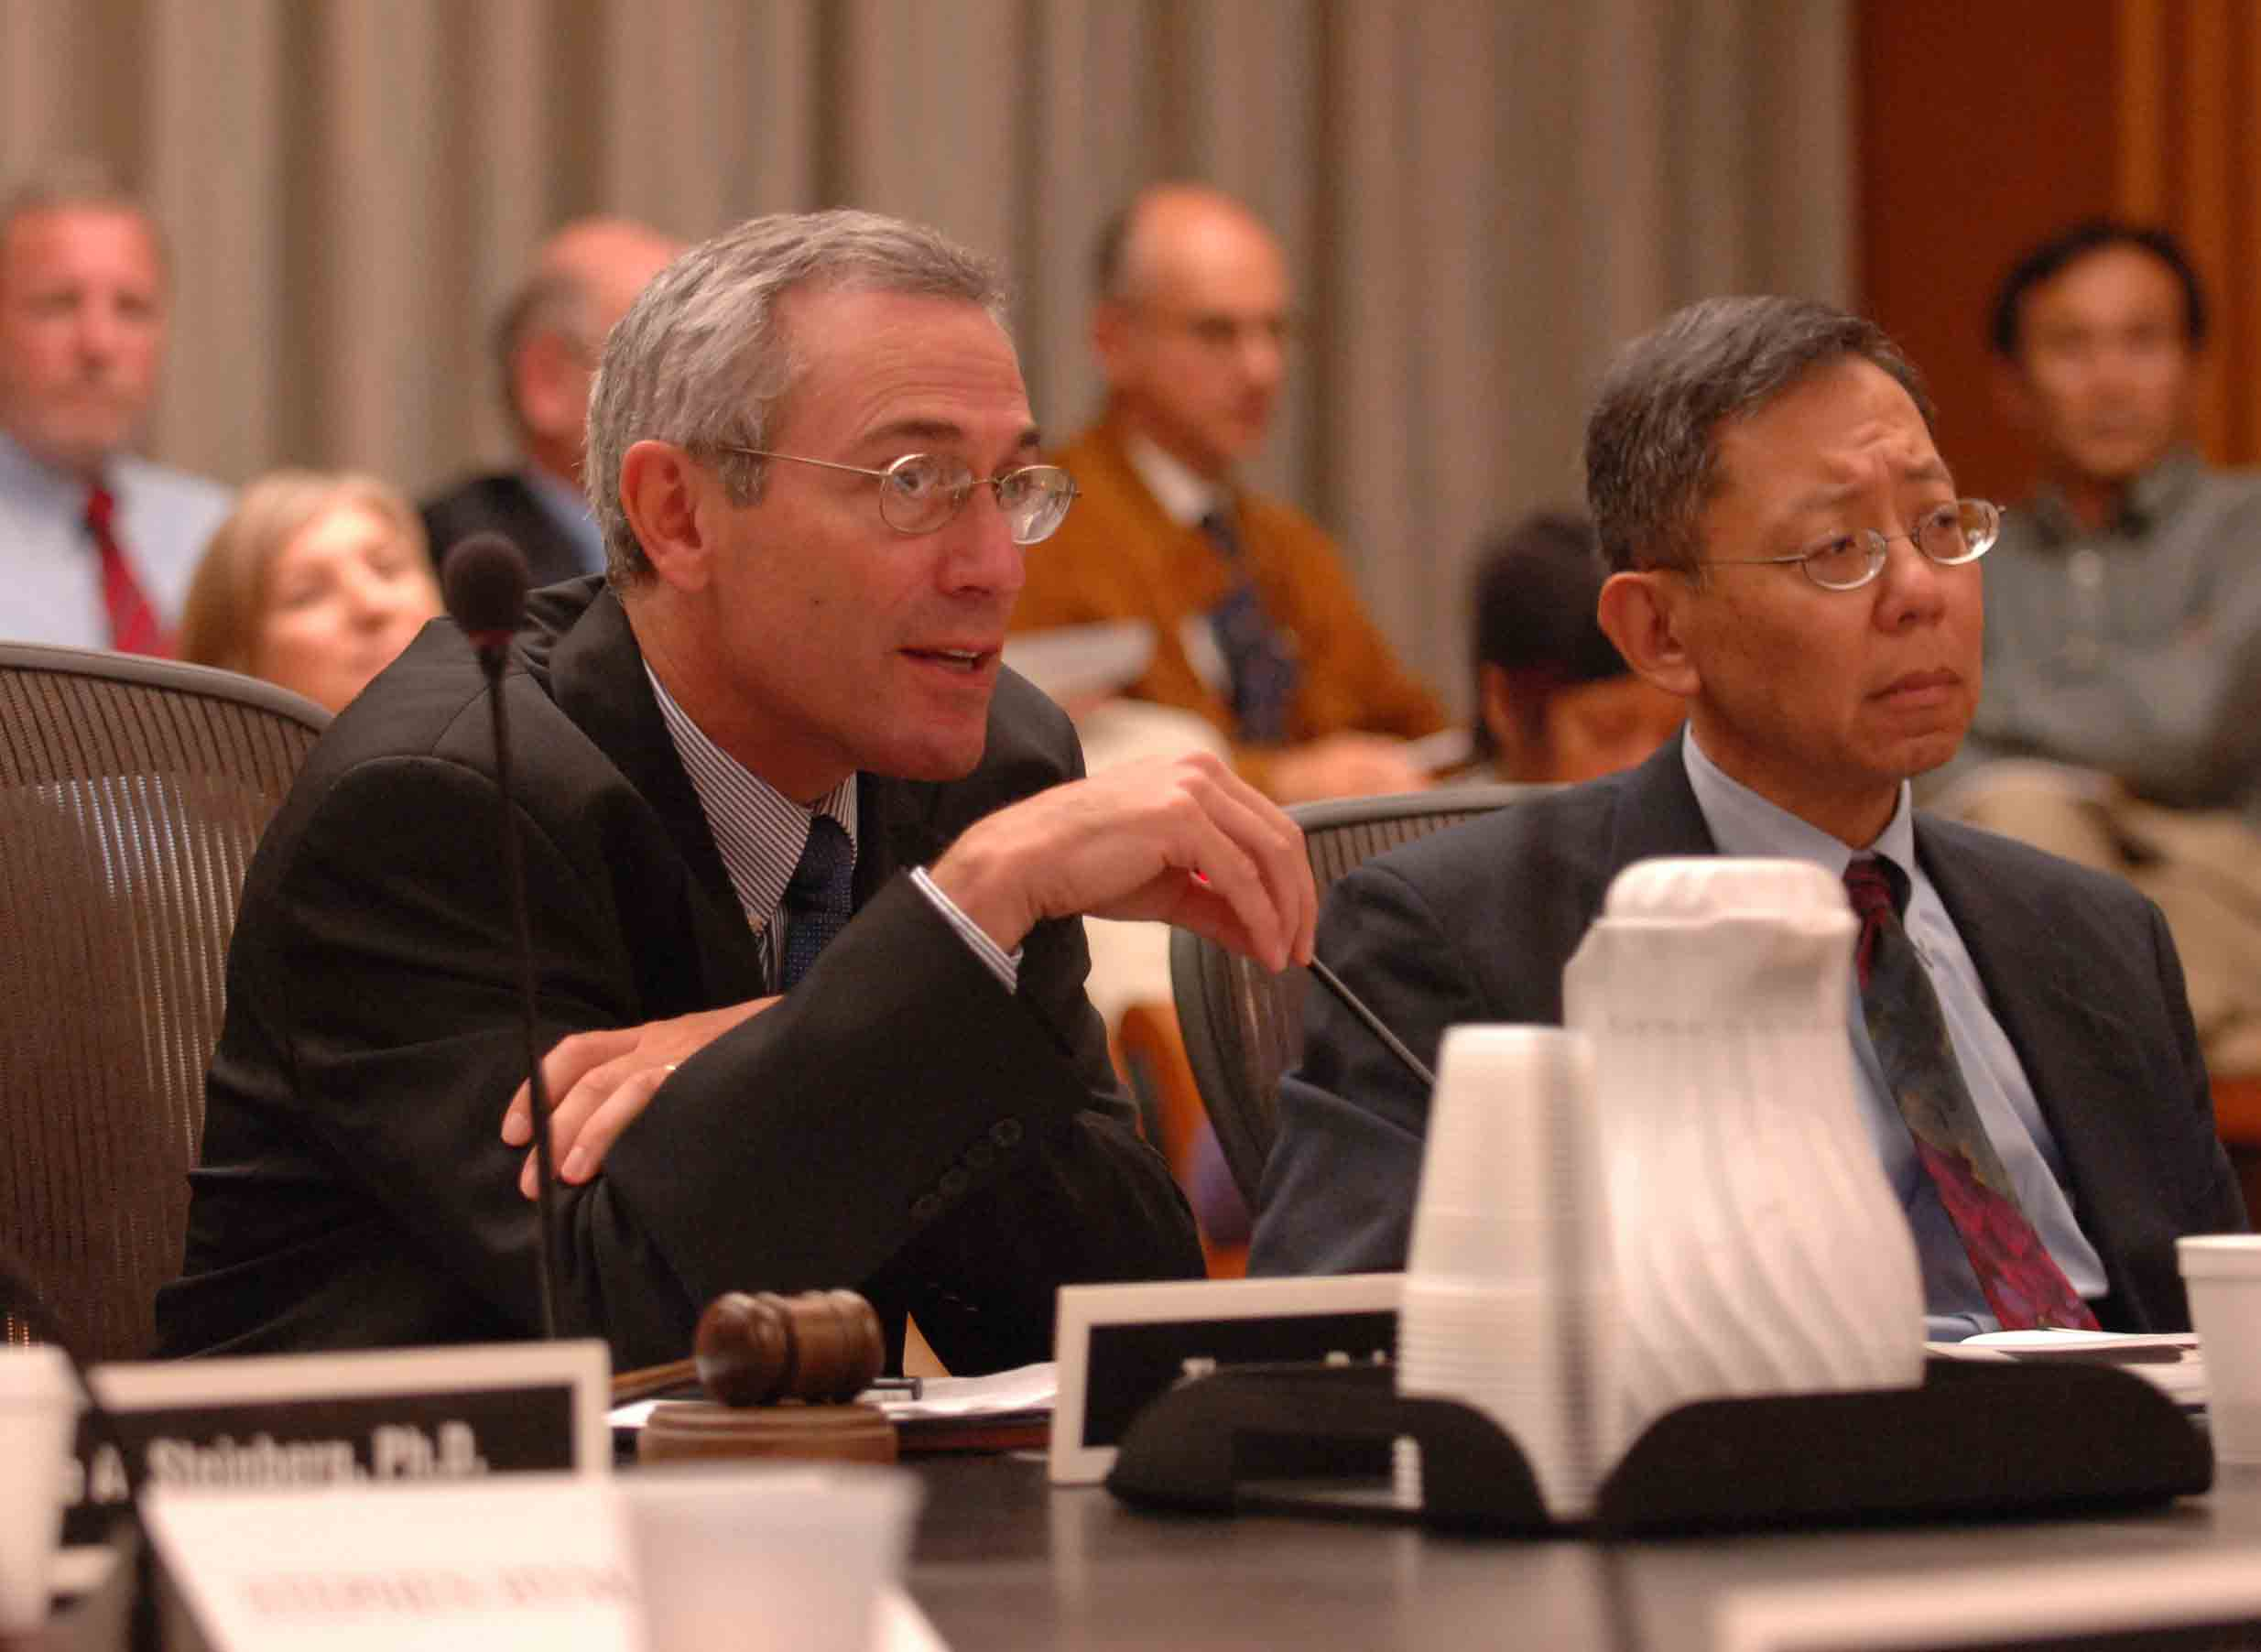 Photo of Doctors Thomas Insel, NIMH Director, and Richard Nakamura, NIMH Deputy Director